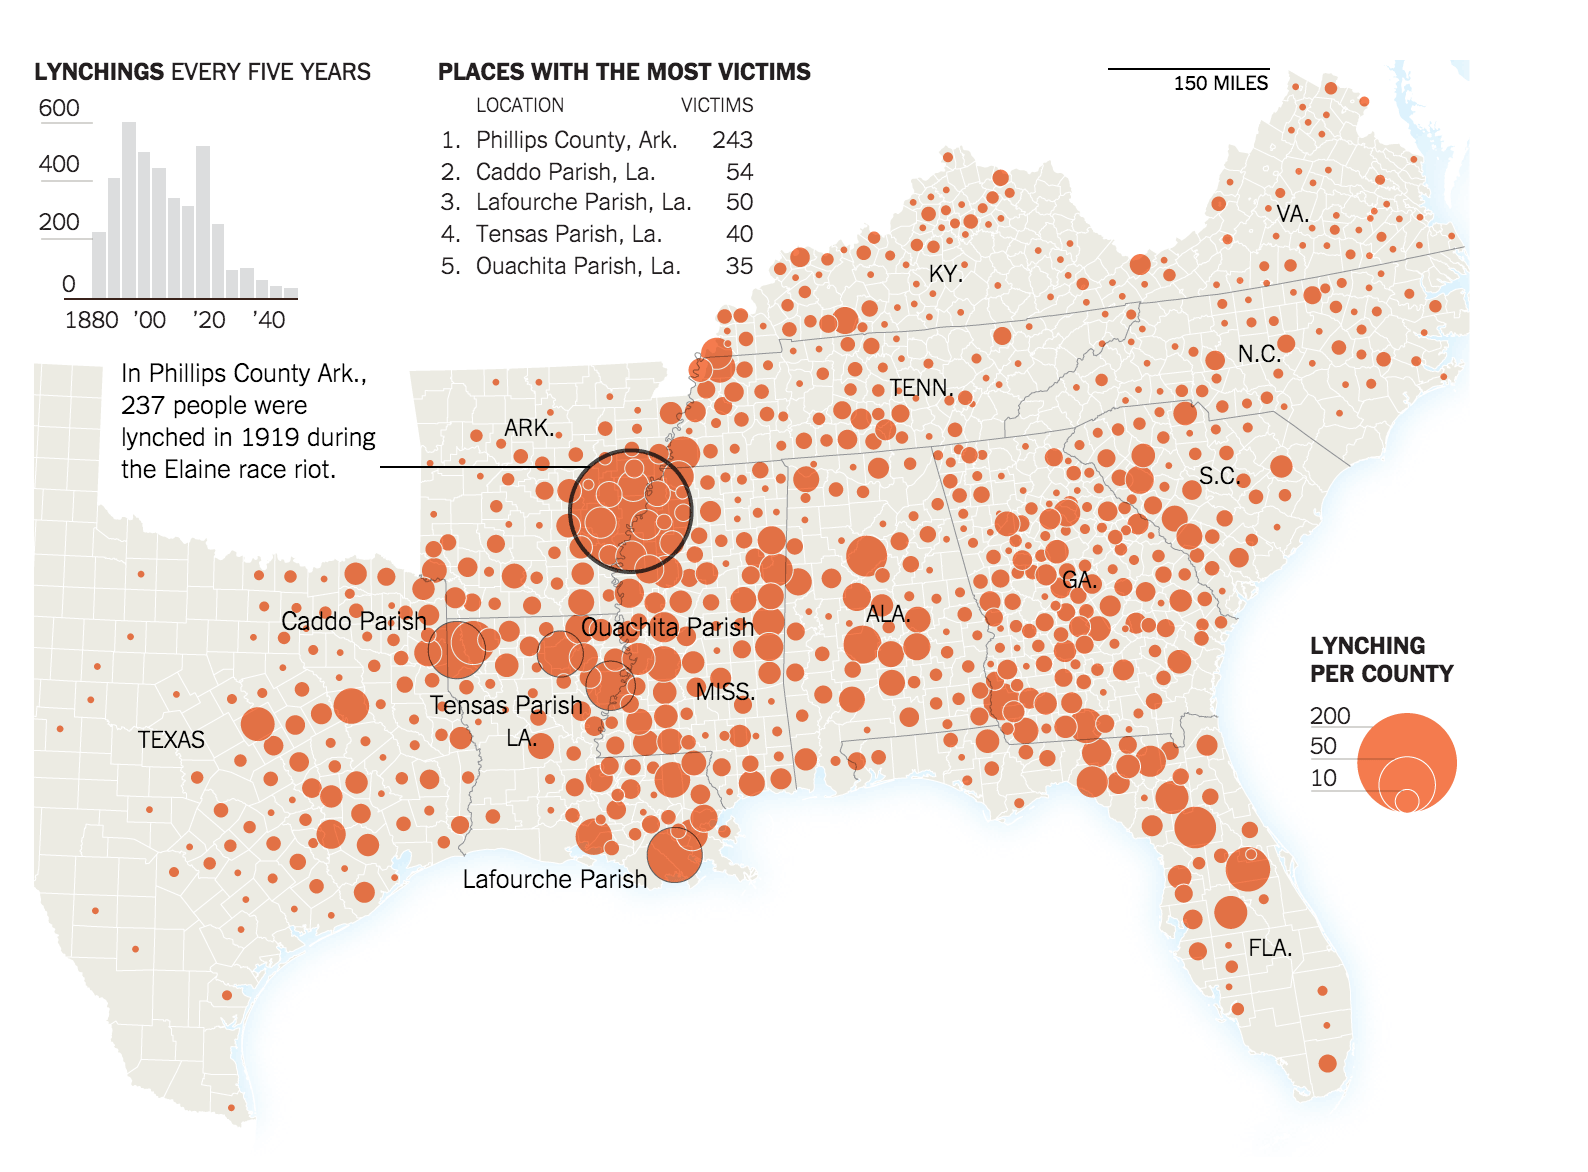 New York Times Graphic Mapping 73 Years of Lynchings in the US